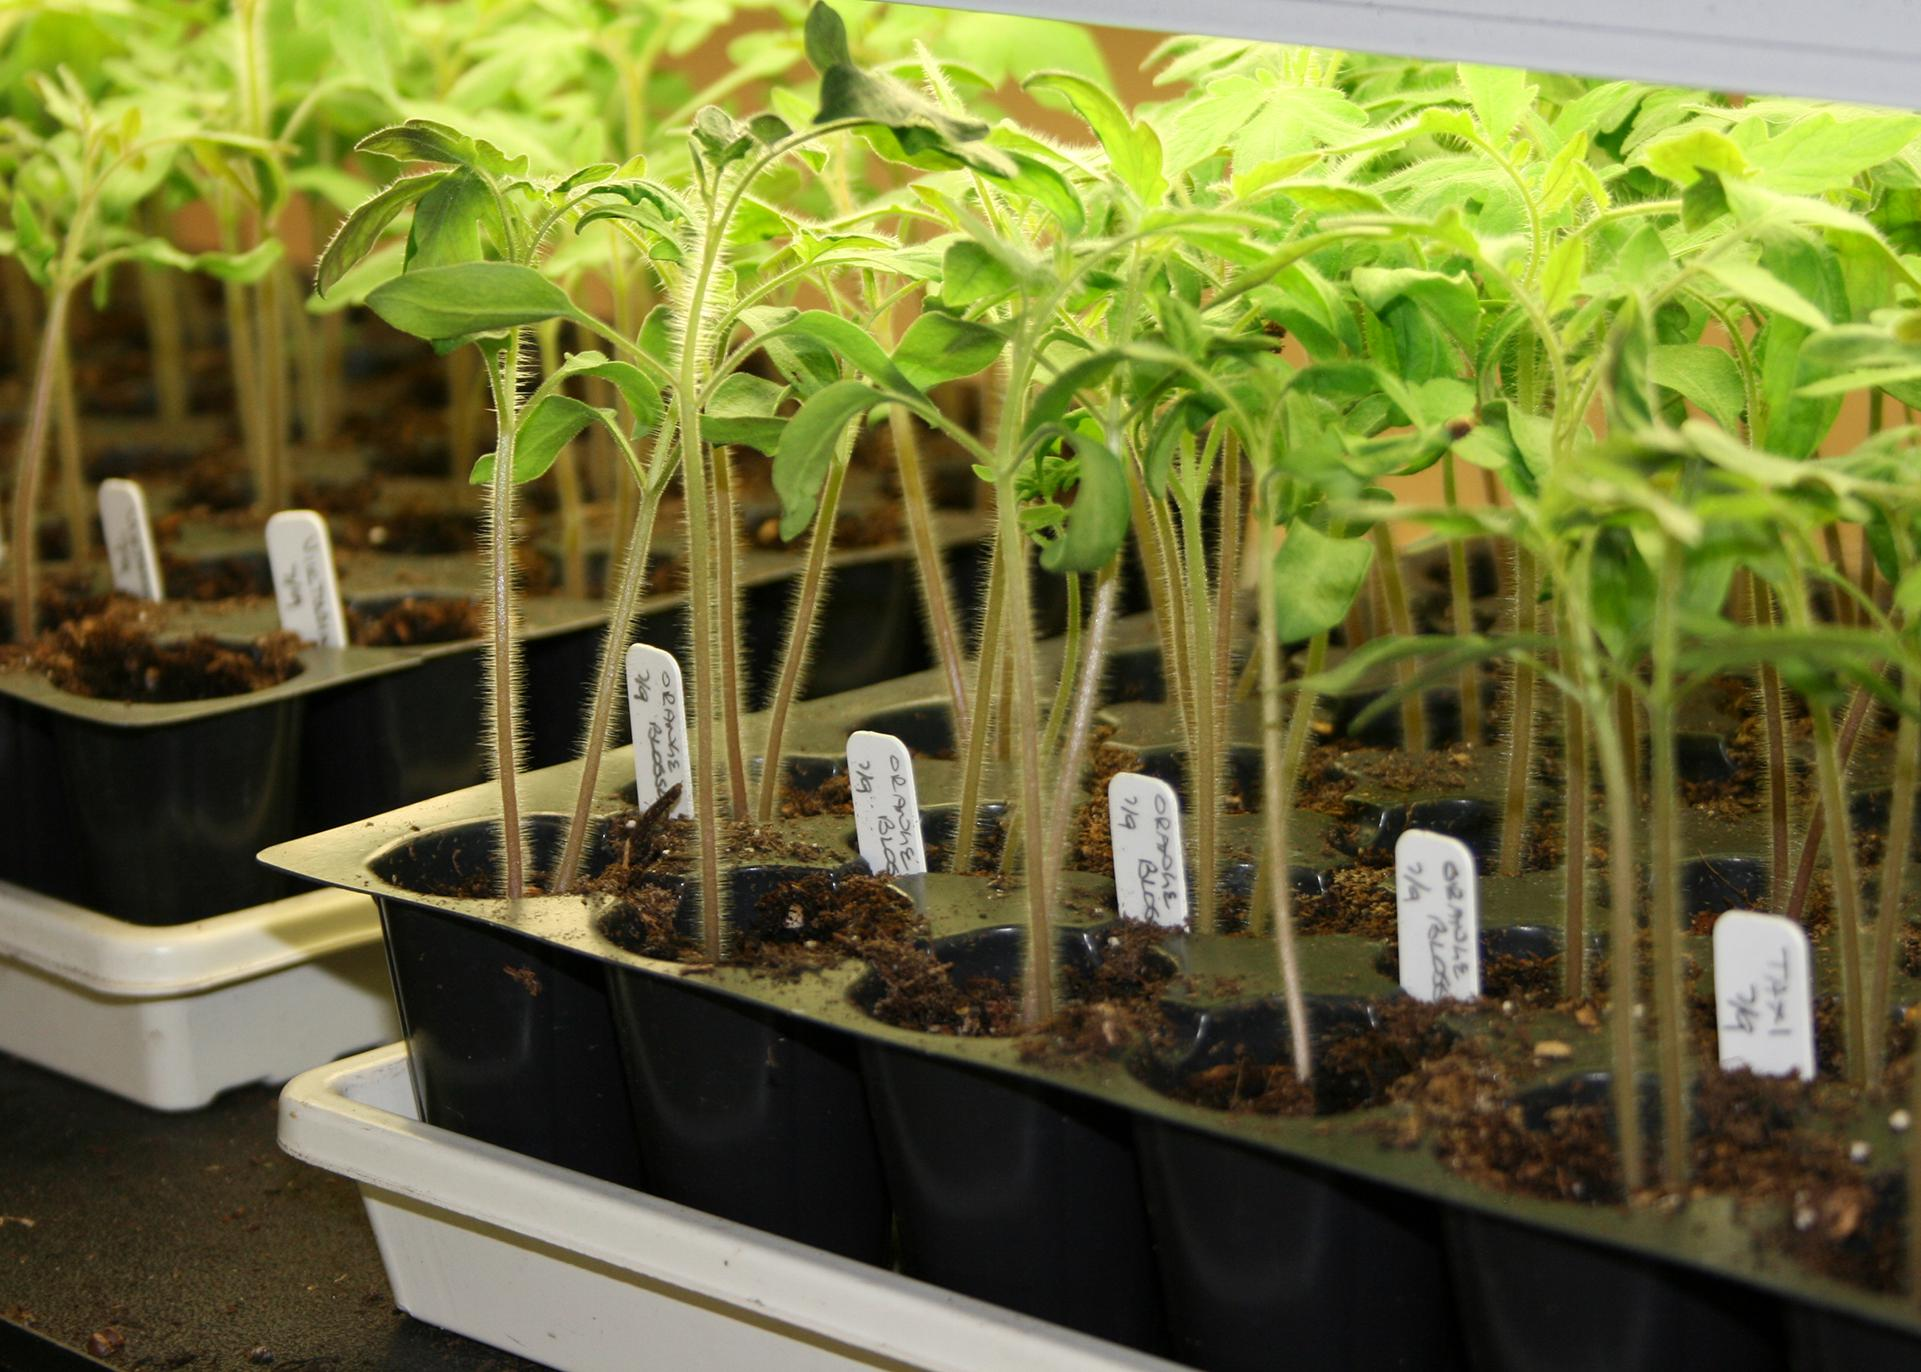 Slender, green seedlings grow in rows under lights in black trays marked by white tags.